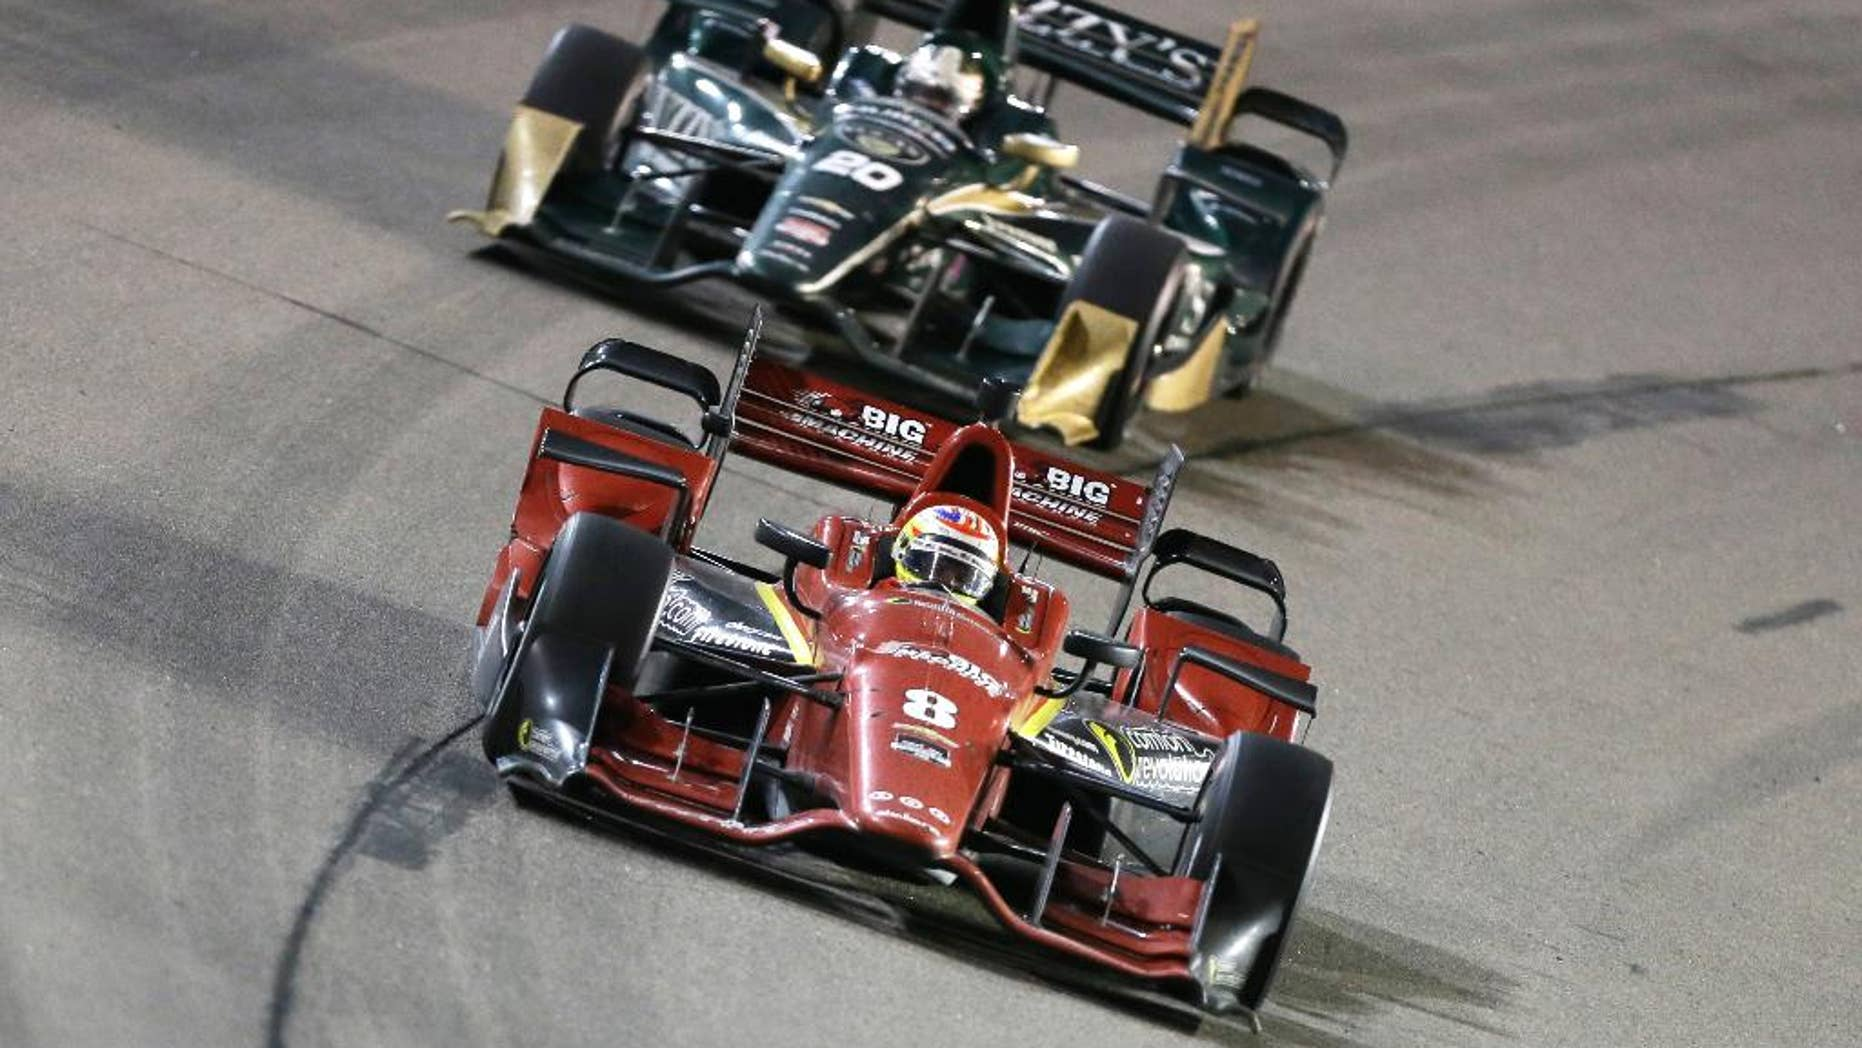 FILE - In this July 18, 2015, file photo, Sage Karam (8) leads Ed Carpenter during an IndyCar Series auto race at Iowa Speedway in Newton, Iowa. Karam won't win the IndyCar title this season. But the Chip Ganassi rookie might push for the championship before long based on his recent performances _ including his first podium last weekend in Iowa.  (AP Photo/Charlie Neibergall, File)